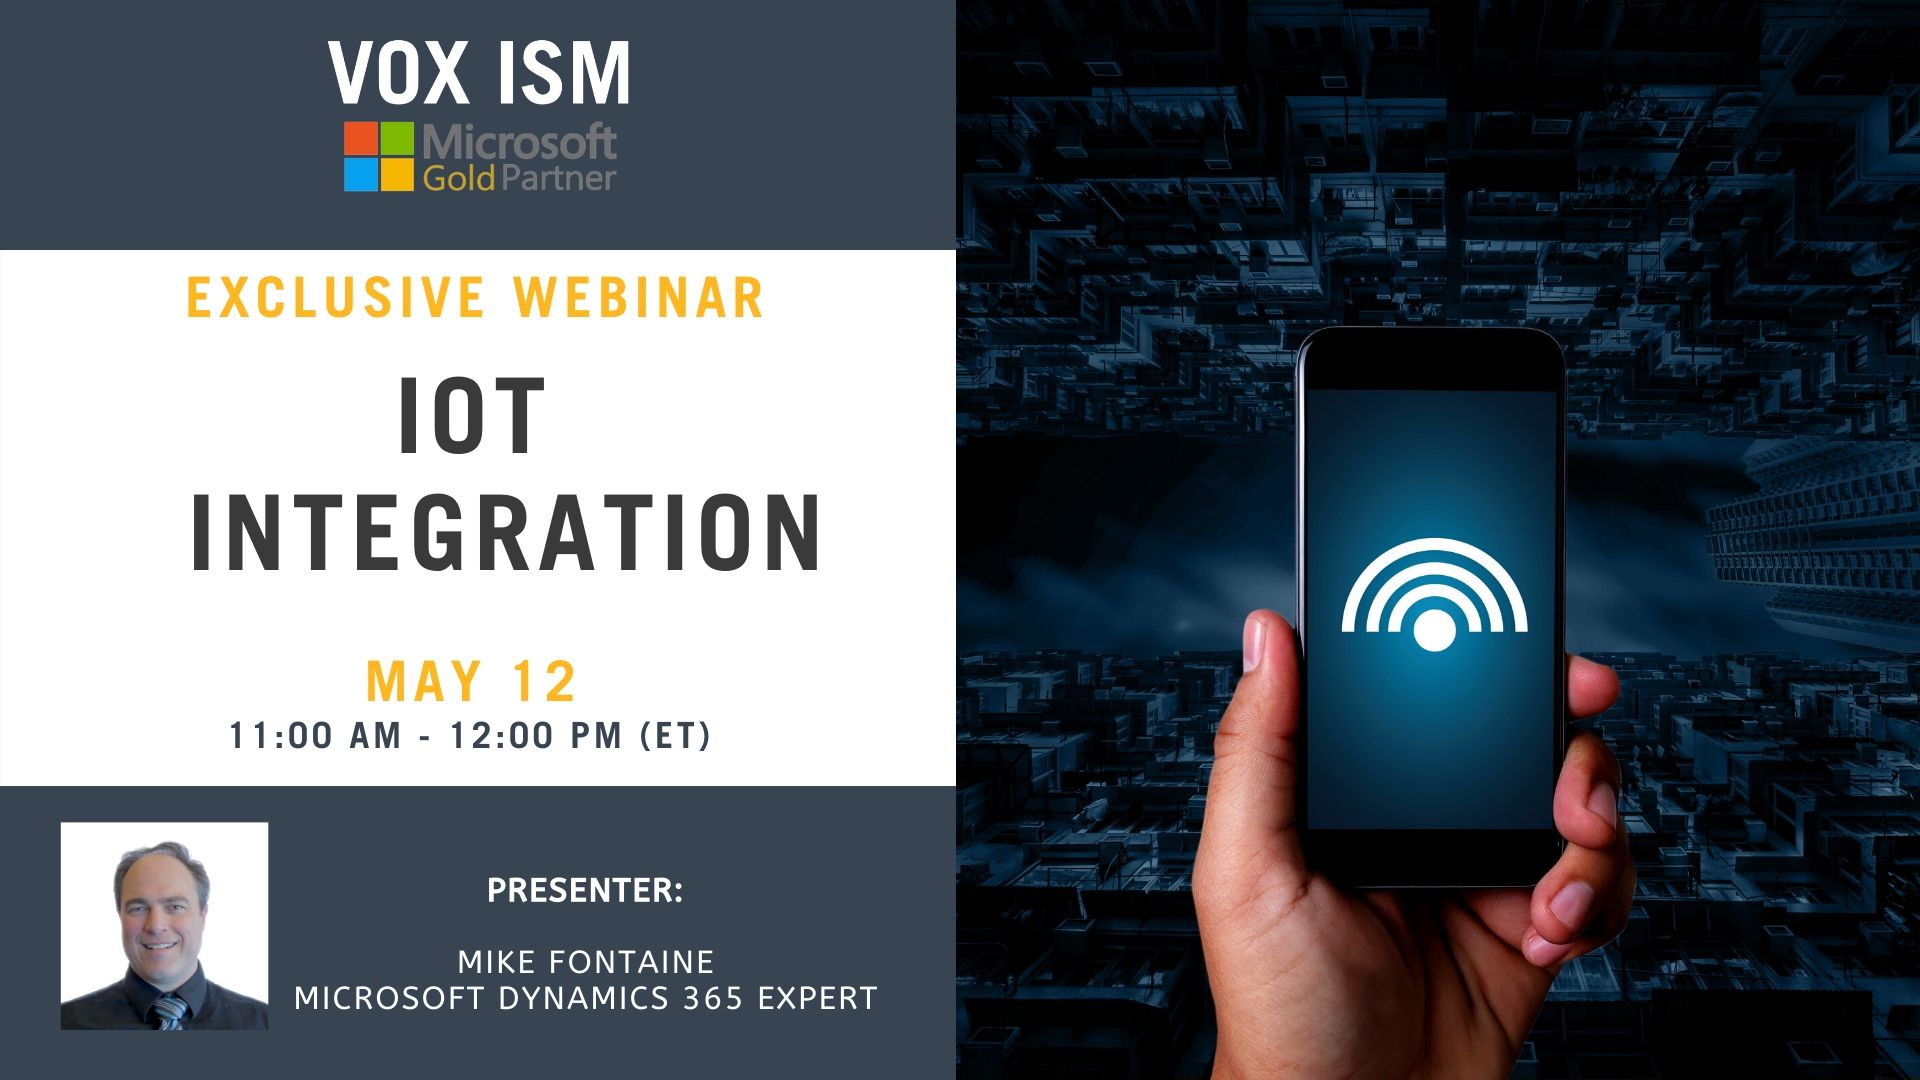 IOT Integration - May 12 - Webinar VOX ISM